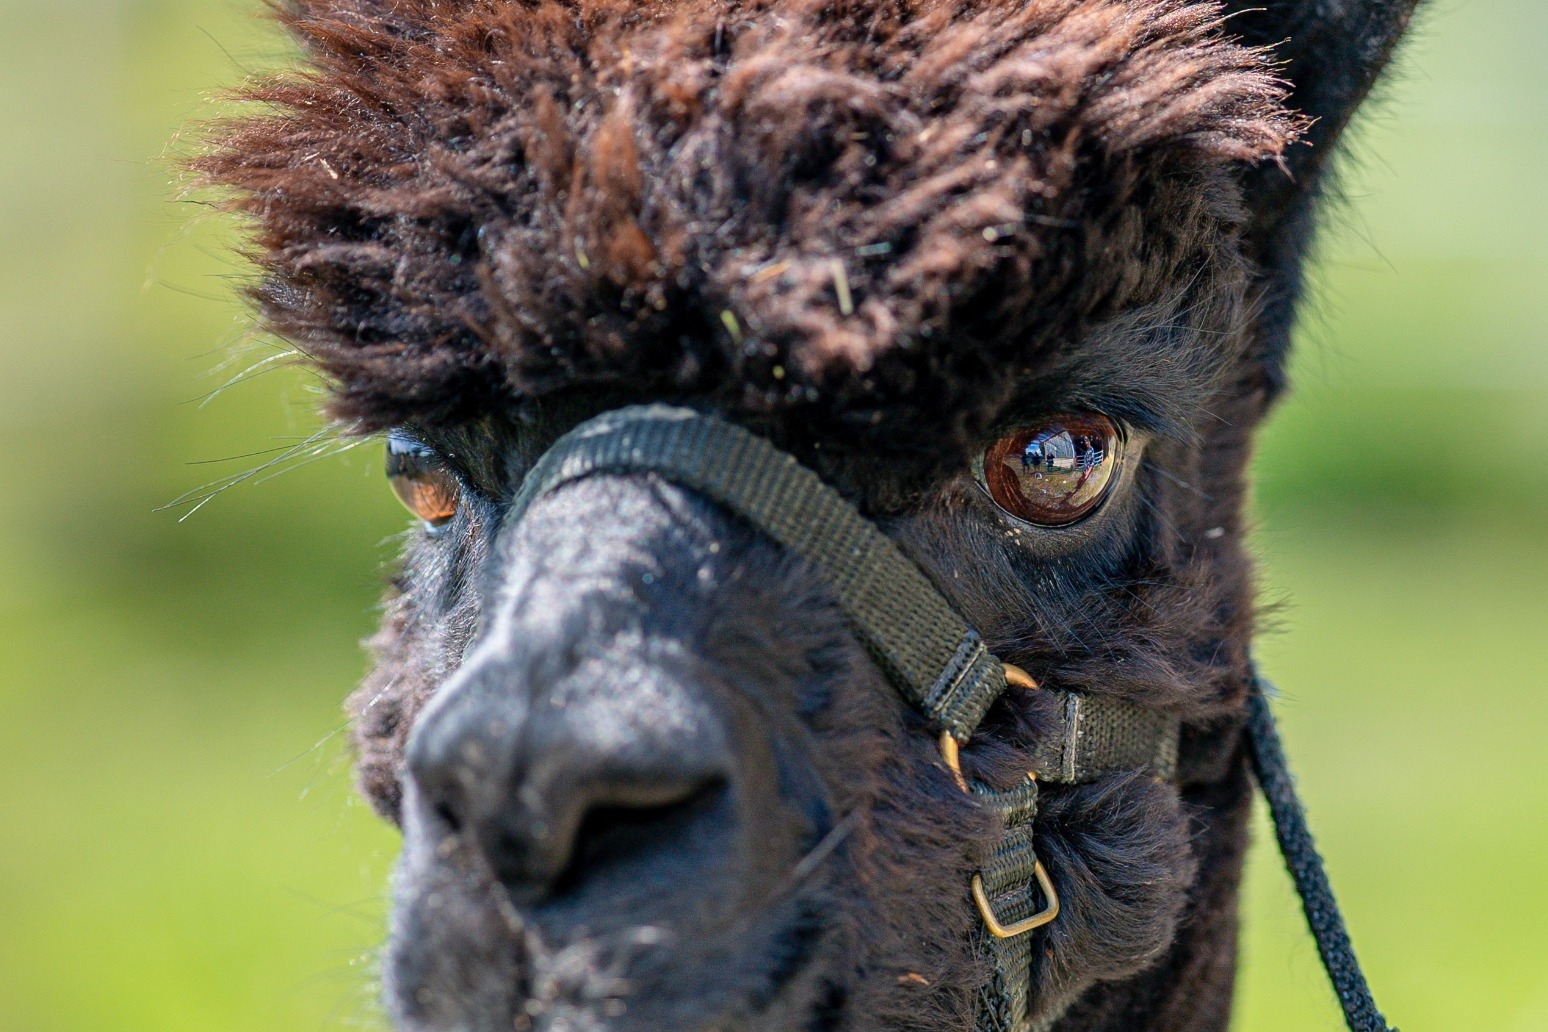 Geronimo the alpaca lives another day as High Court hearing postponed